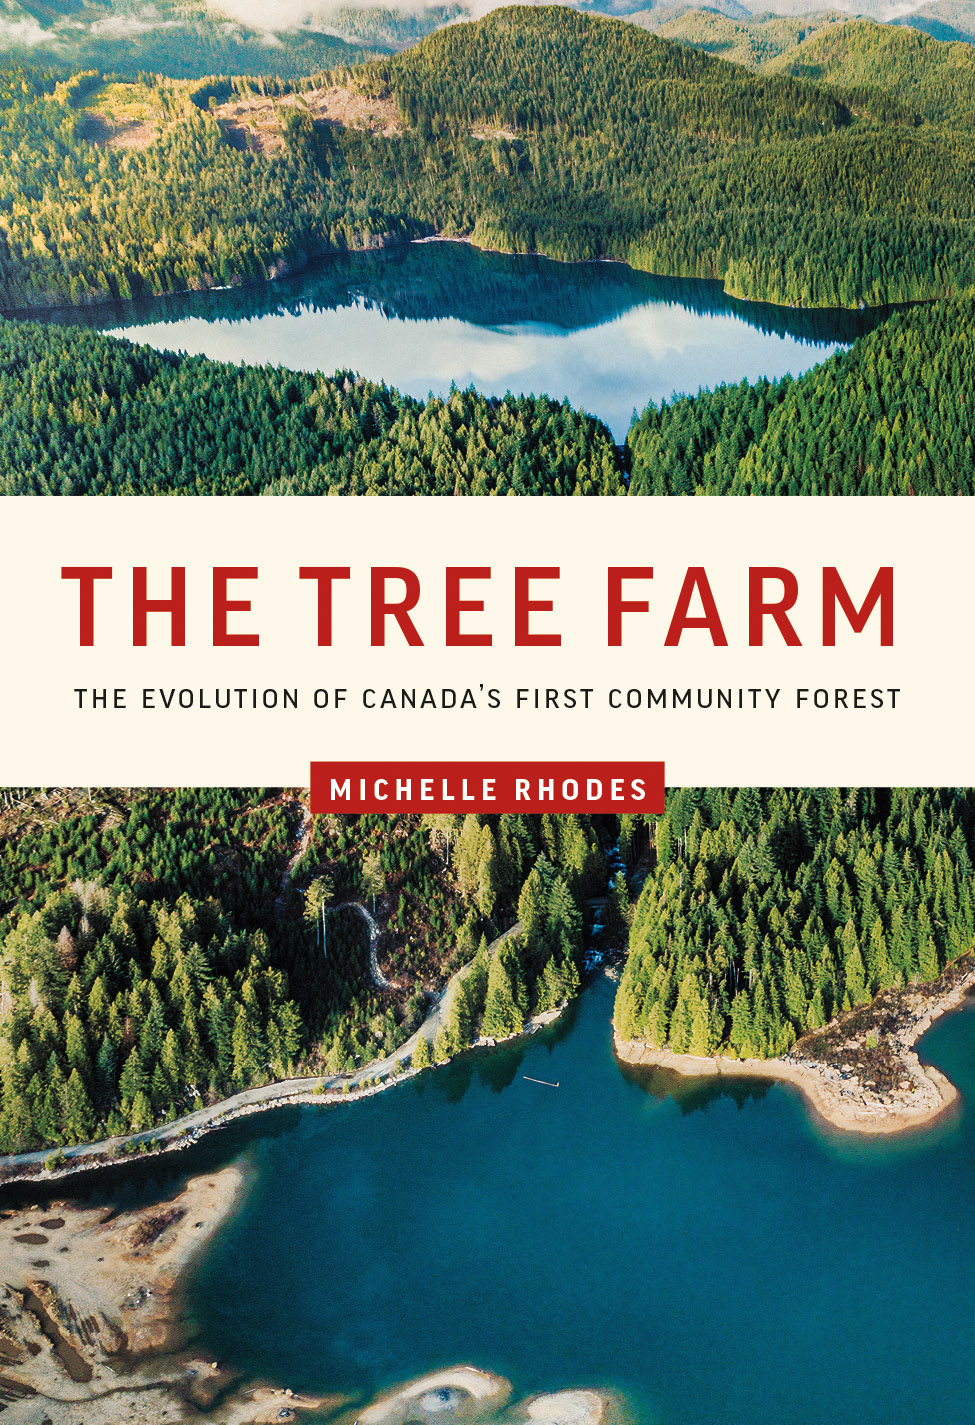 The Tree Farm by Michelle Rhodes